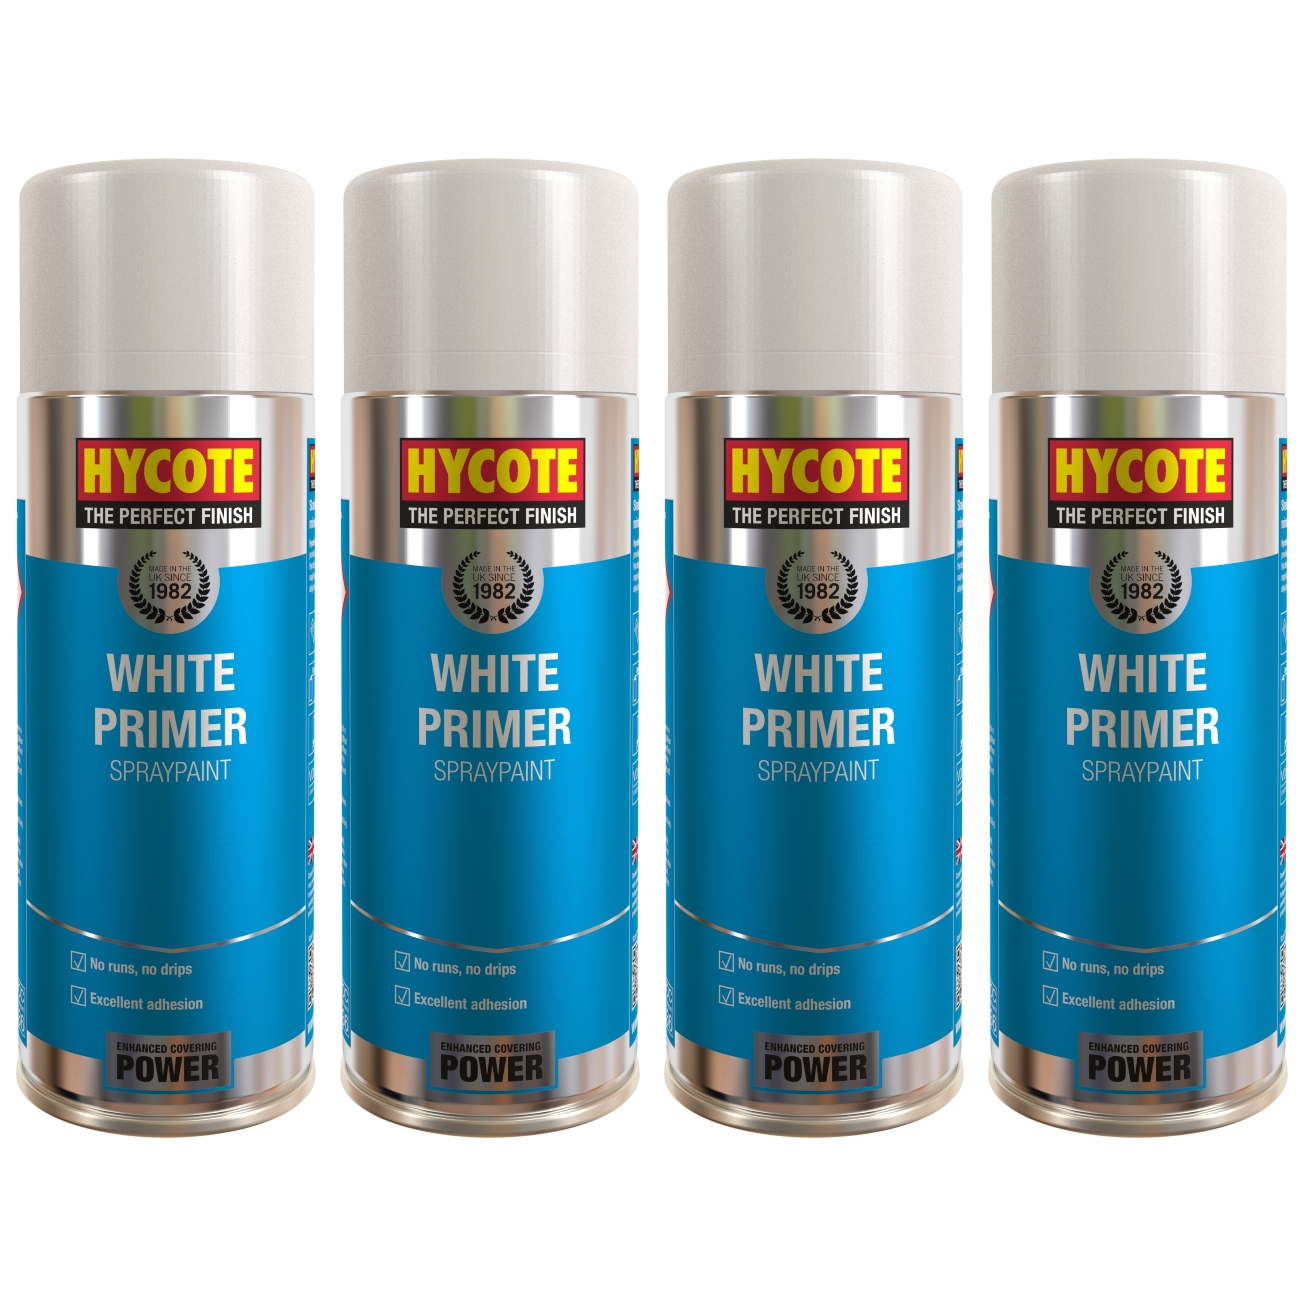 What Does Spray Paint Primer Do Primer Spray Paint Rust Oleum 340g Ultra Cover 2x Grey Primer